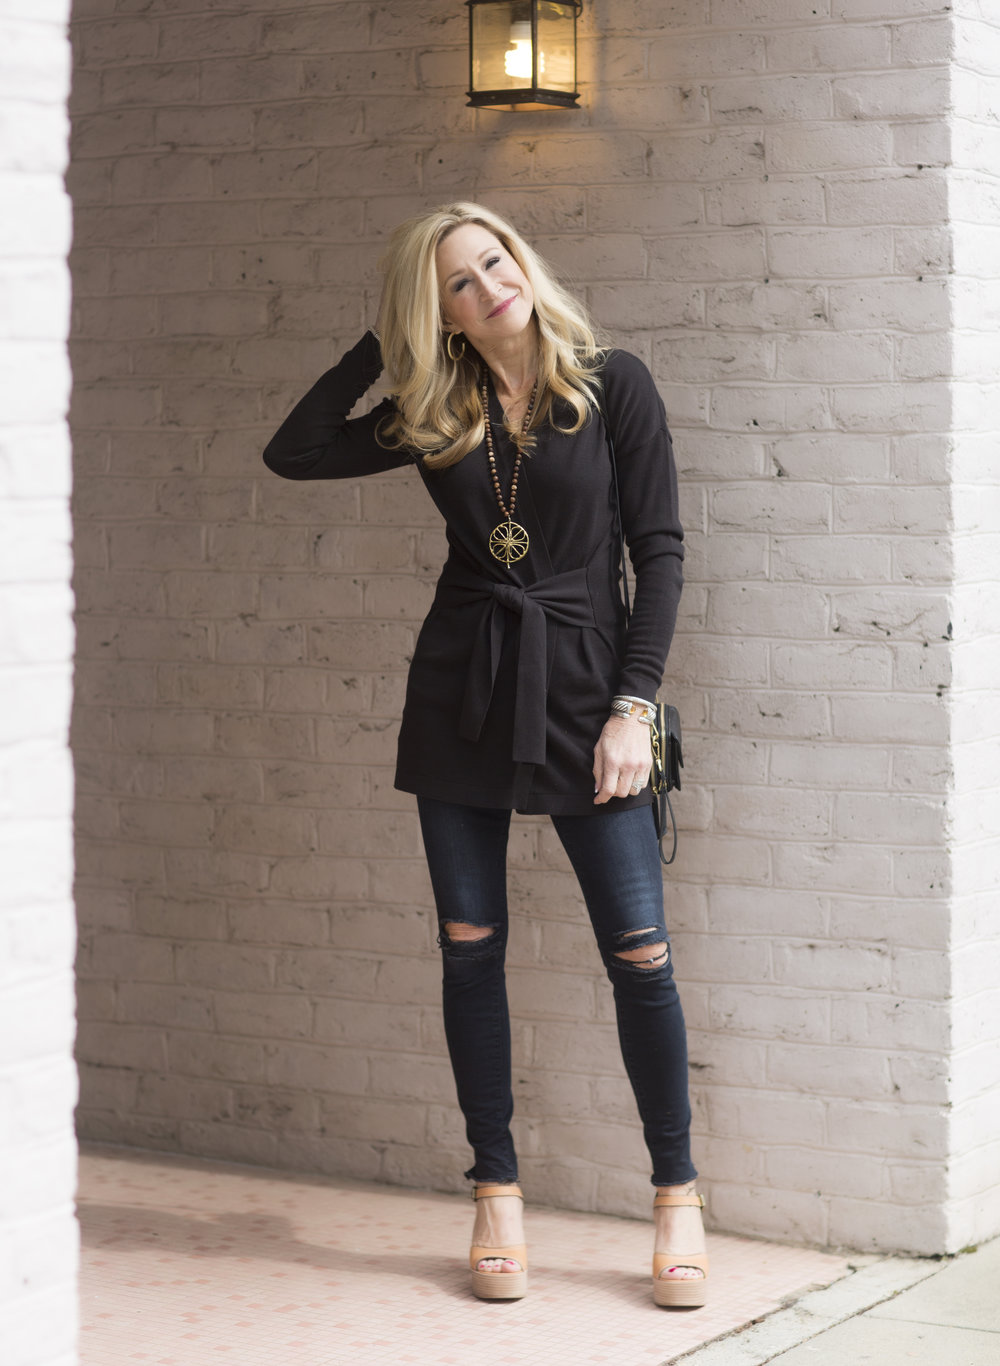 Loft cardigan sweater with See by Chloe shoes